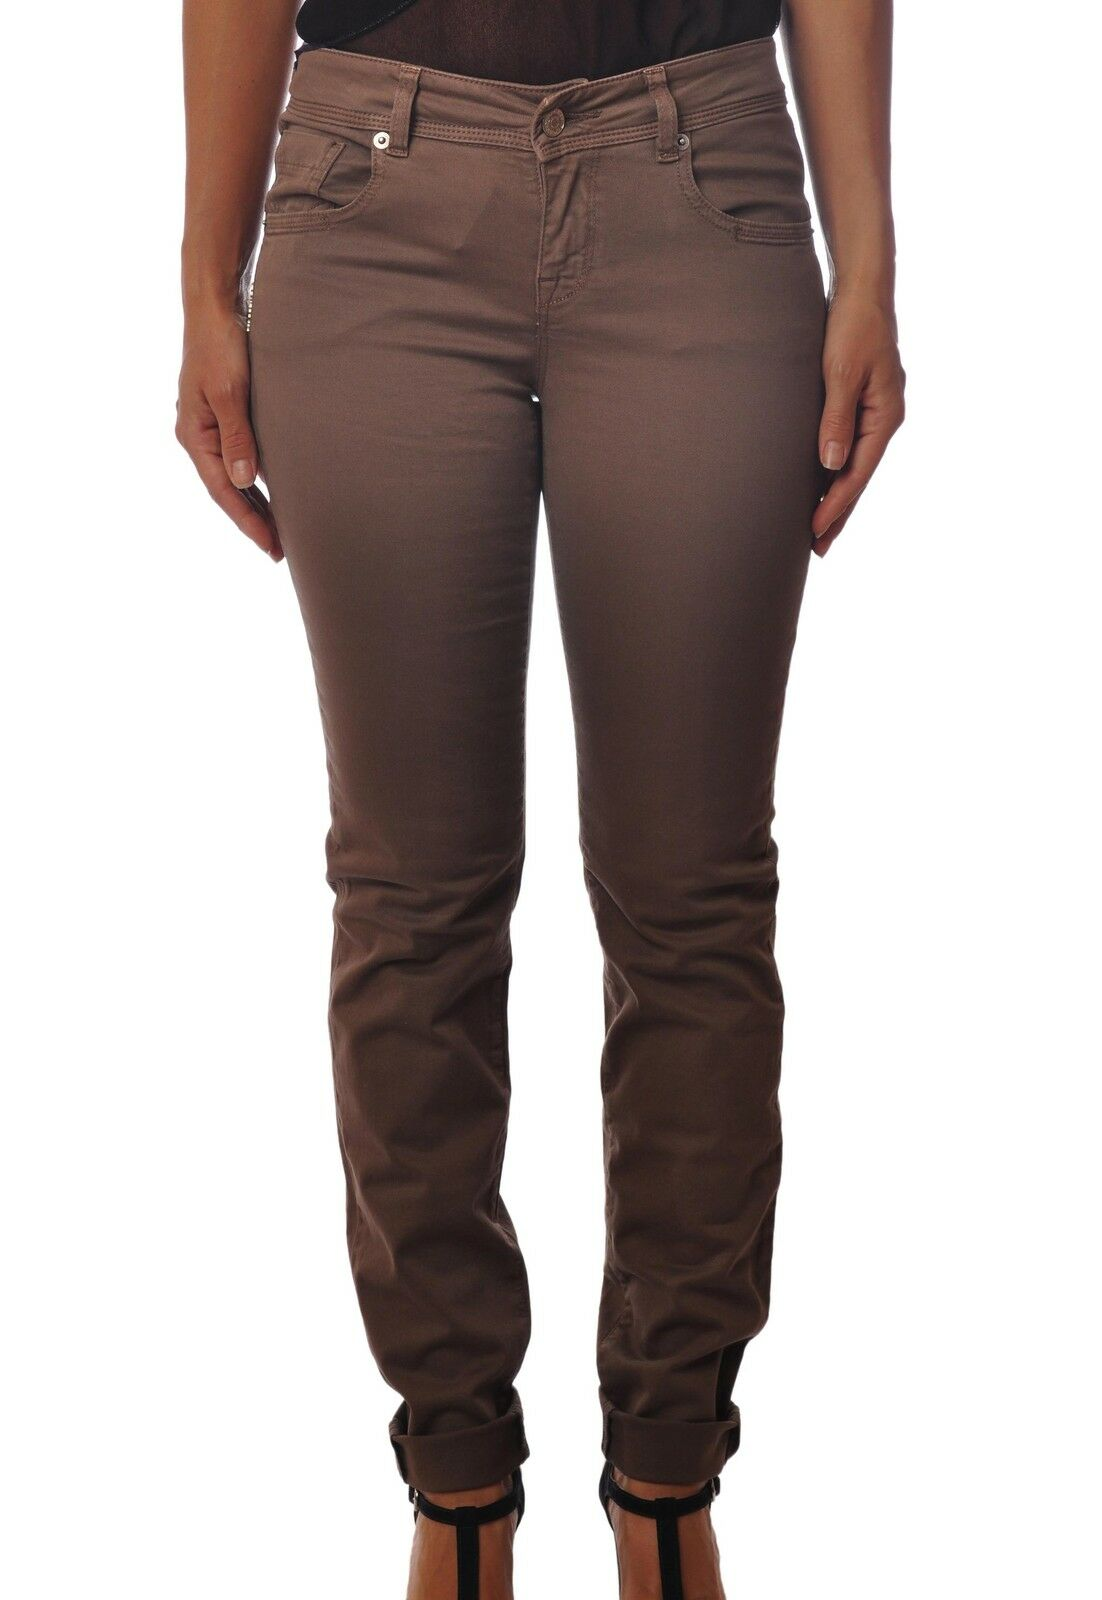 Latinò  -  Pants - Female - Brown - 3820829A182201